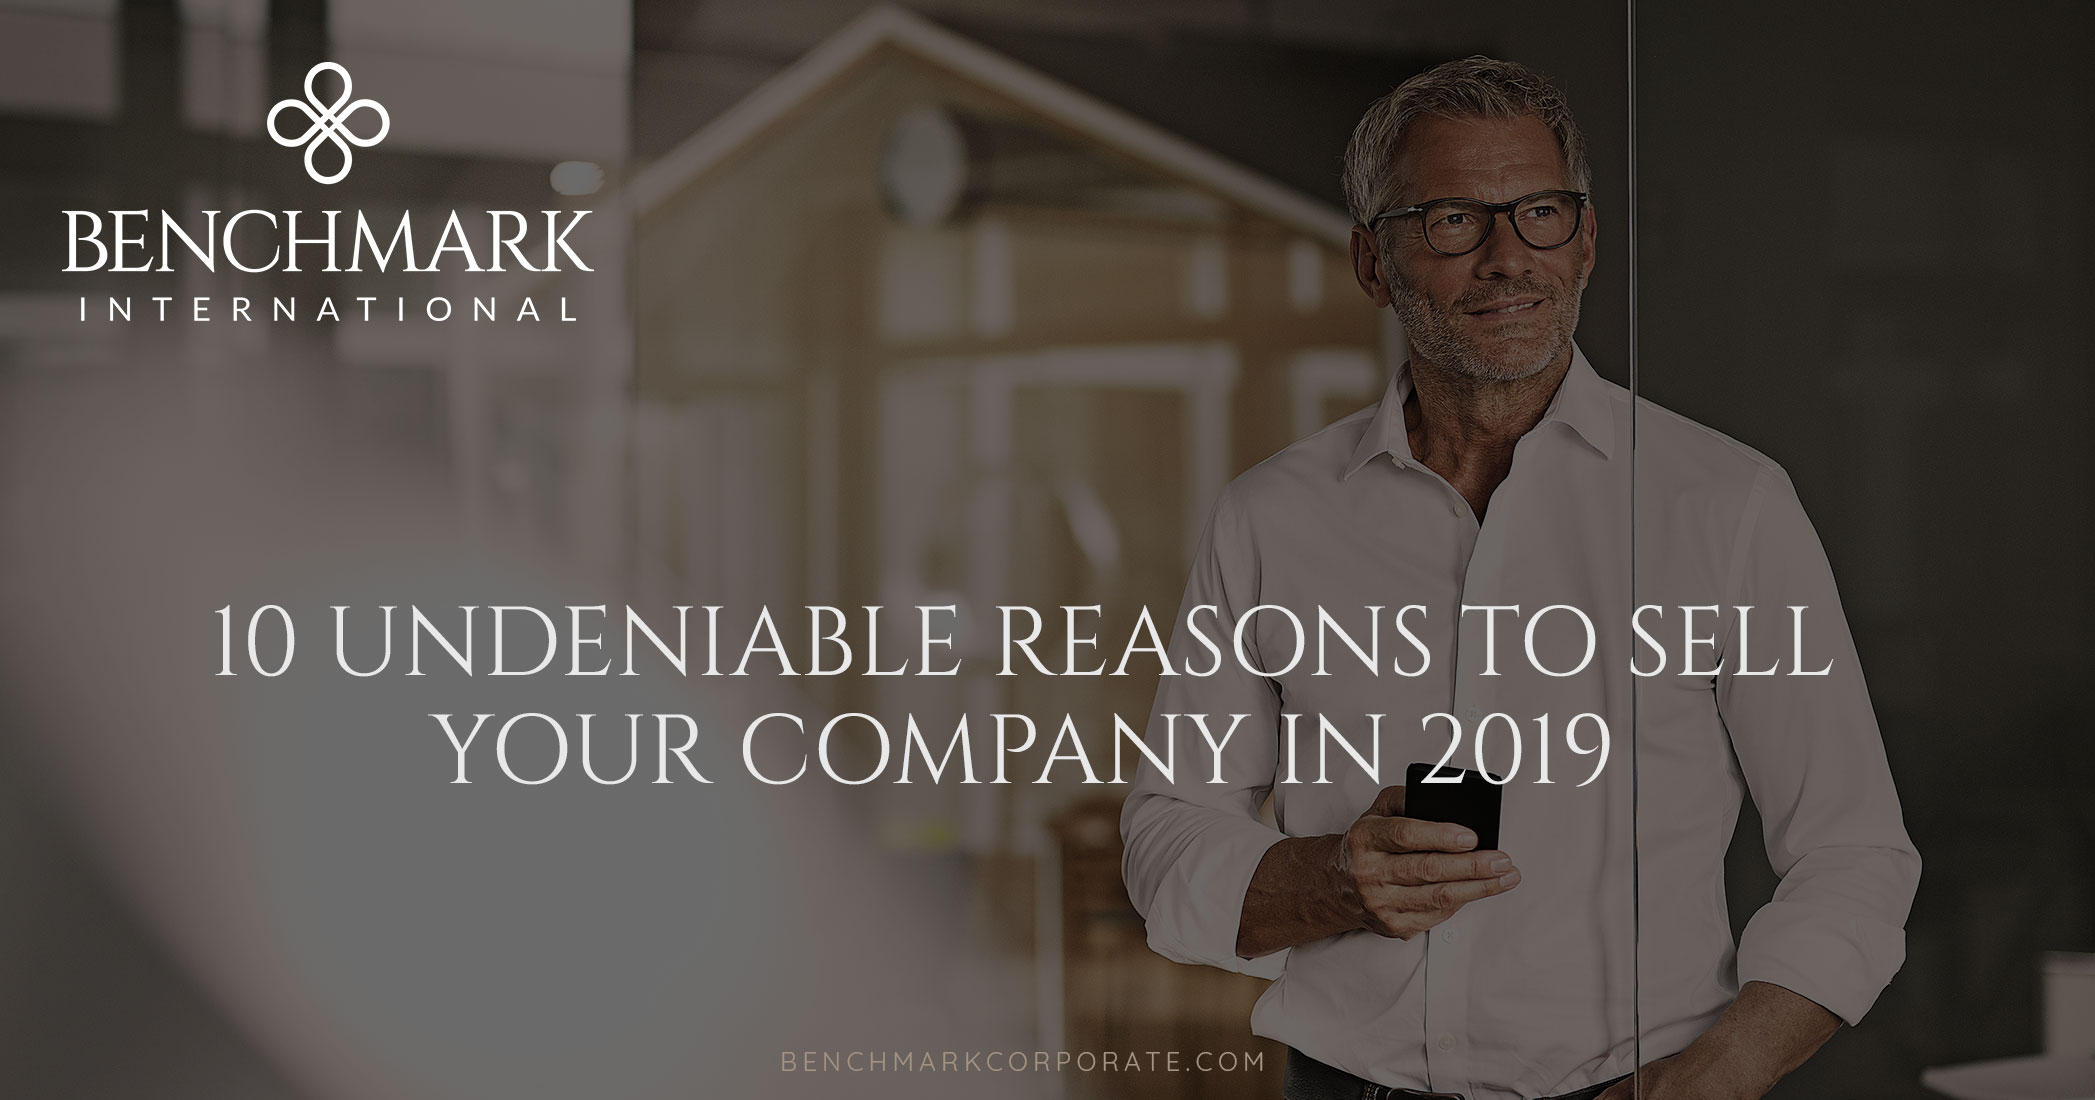 10 Undeniable Reasons To Sell Your Company In 2019